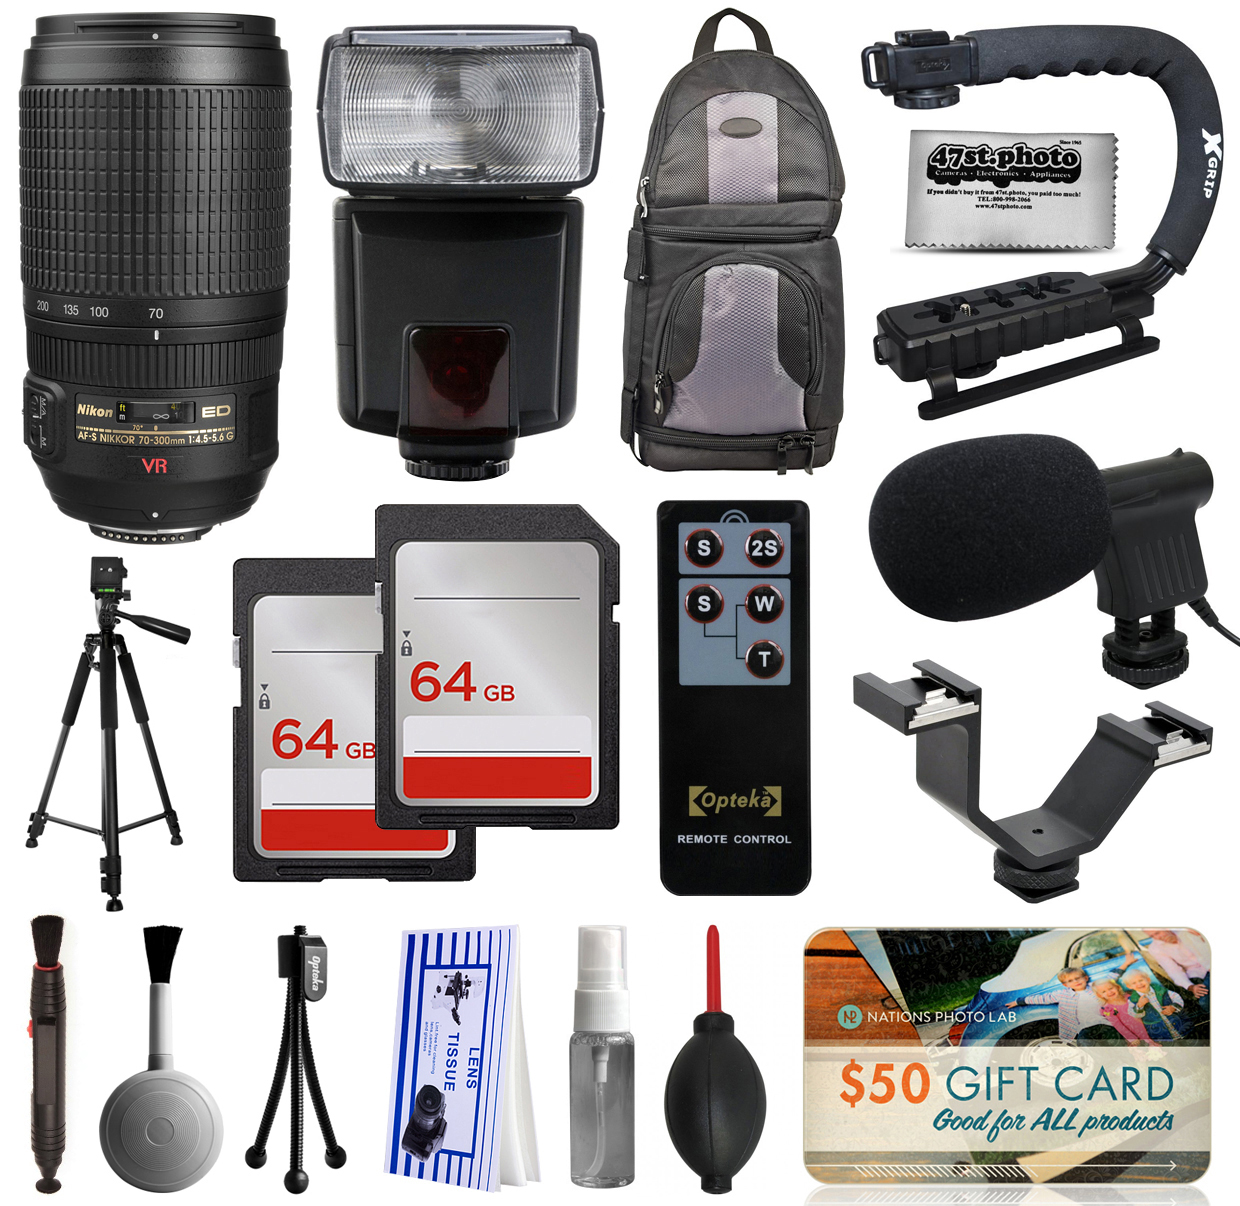 Must Have Accessory Bundle with Nikon VR 70-300mm Lens + Flash + Backpack + 128GB Memory + Microphone for Nikon DF D7200 D7100 D7000 D5500 D5300 D5200 D5100 D5000 D3300 D3200 D3100 D3000 D300S D90